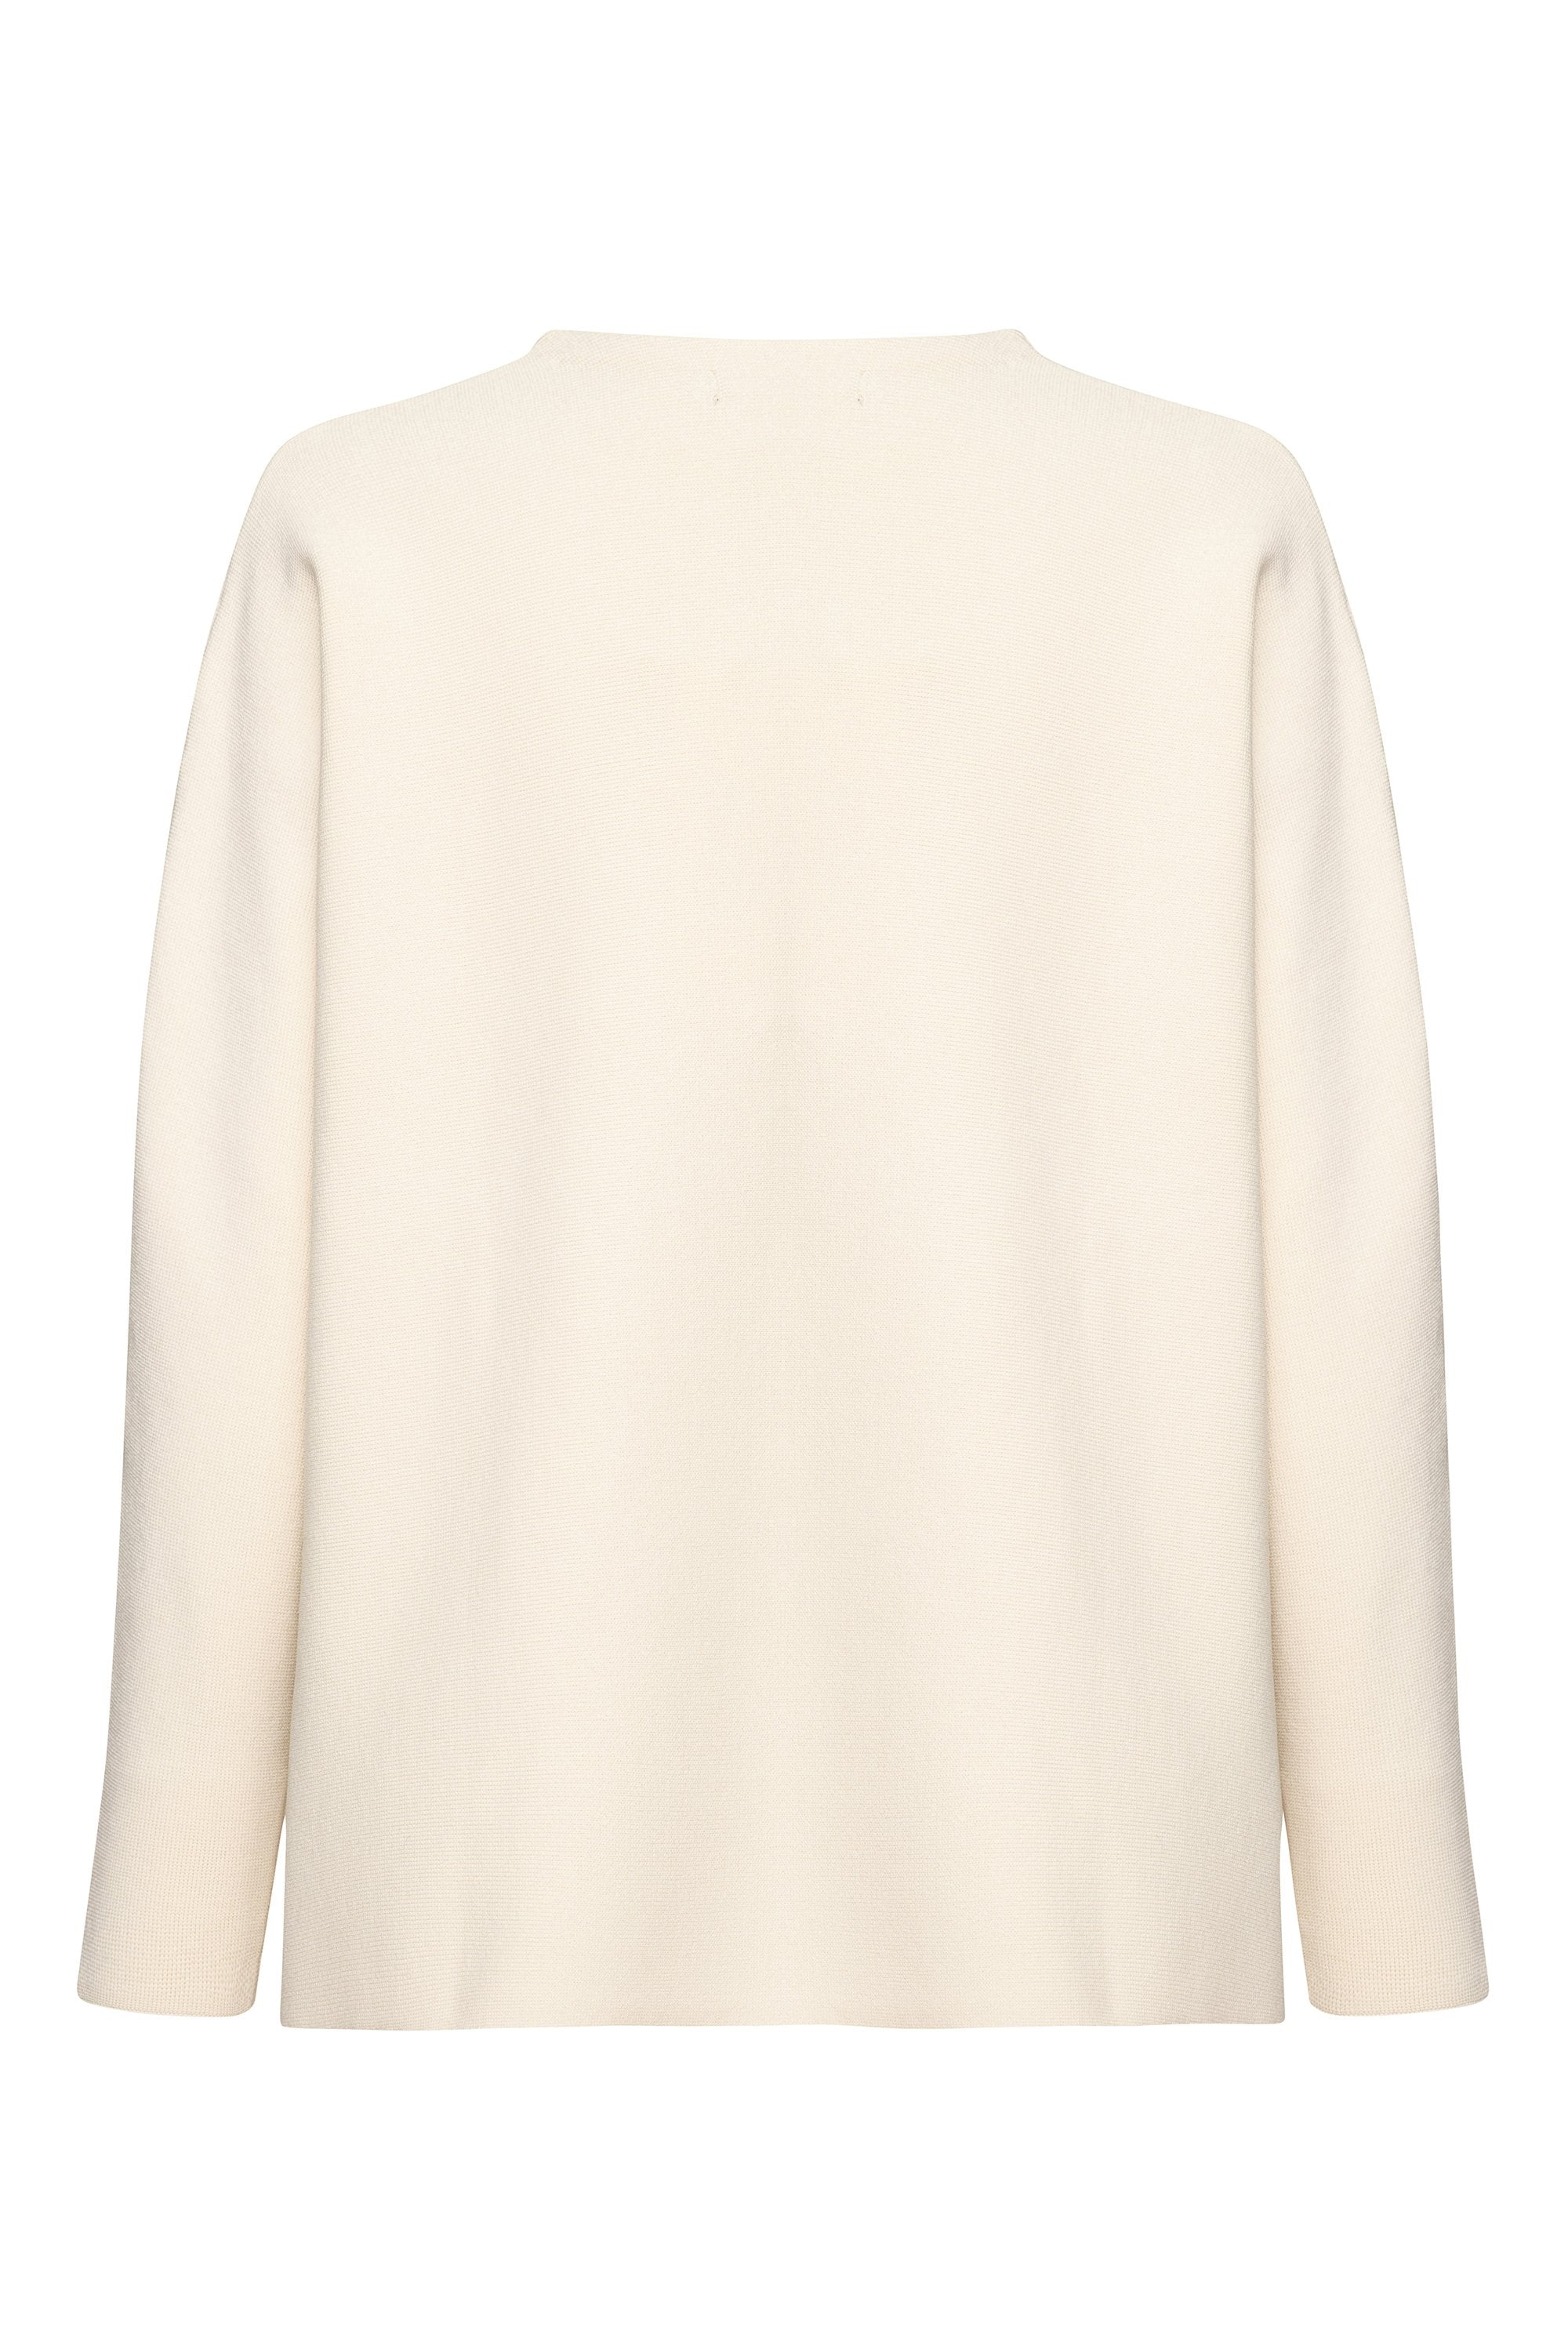 Milla Jumper In Cream